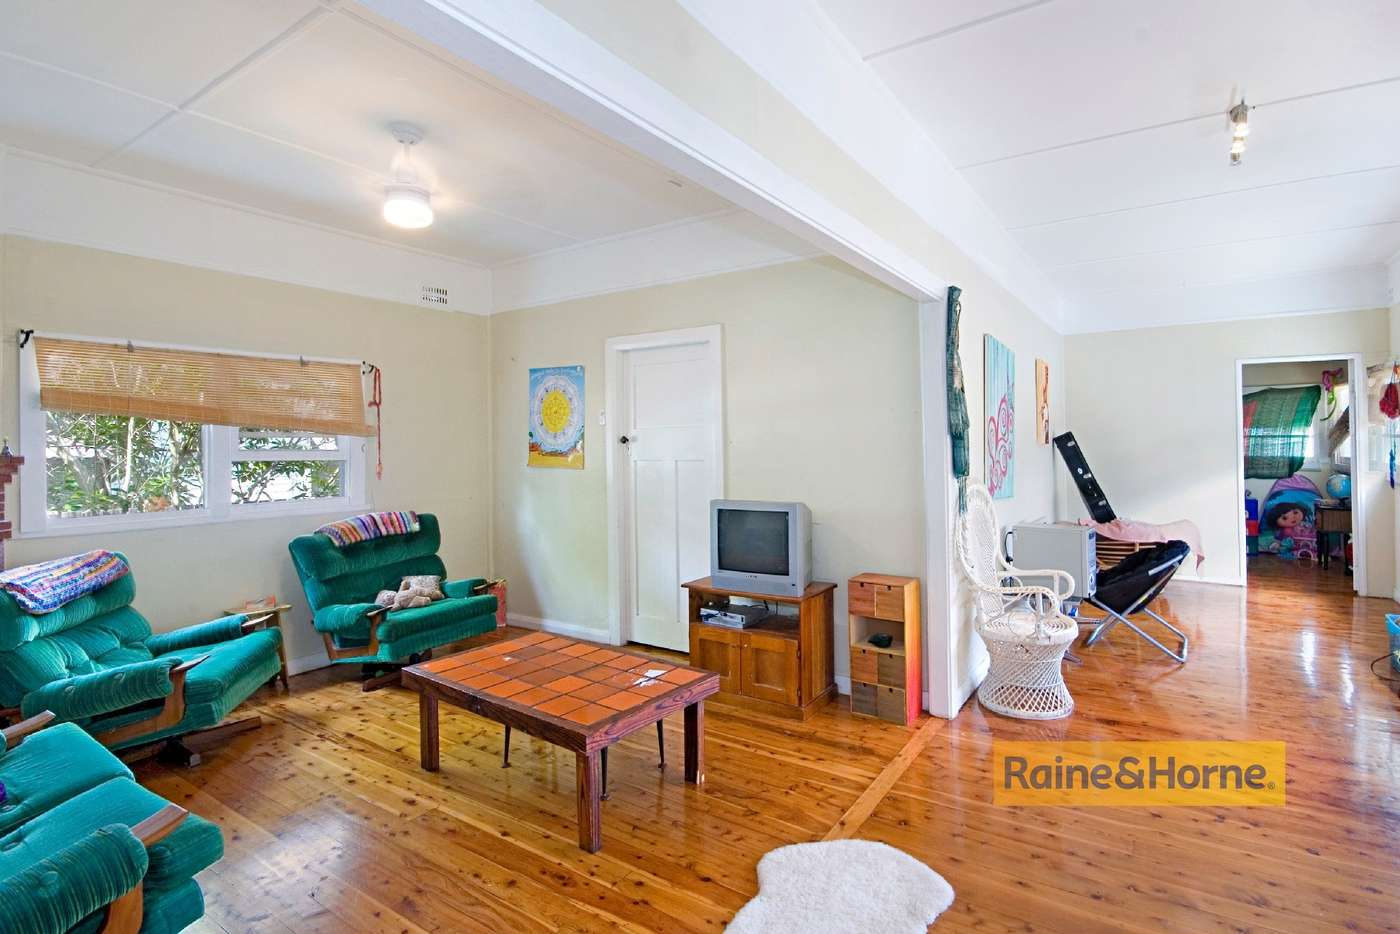 Main view of Homely house listing, 20 Coolabah Street, Ettalong Beach NSW 2257